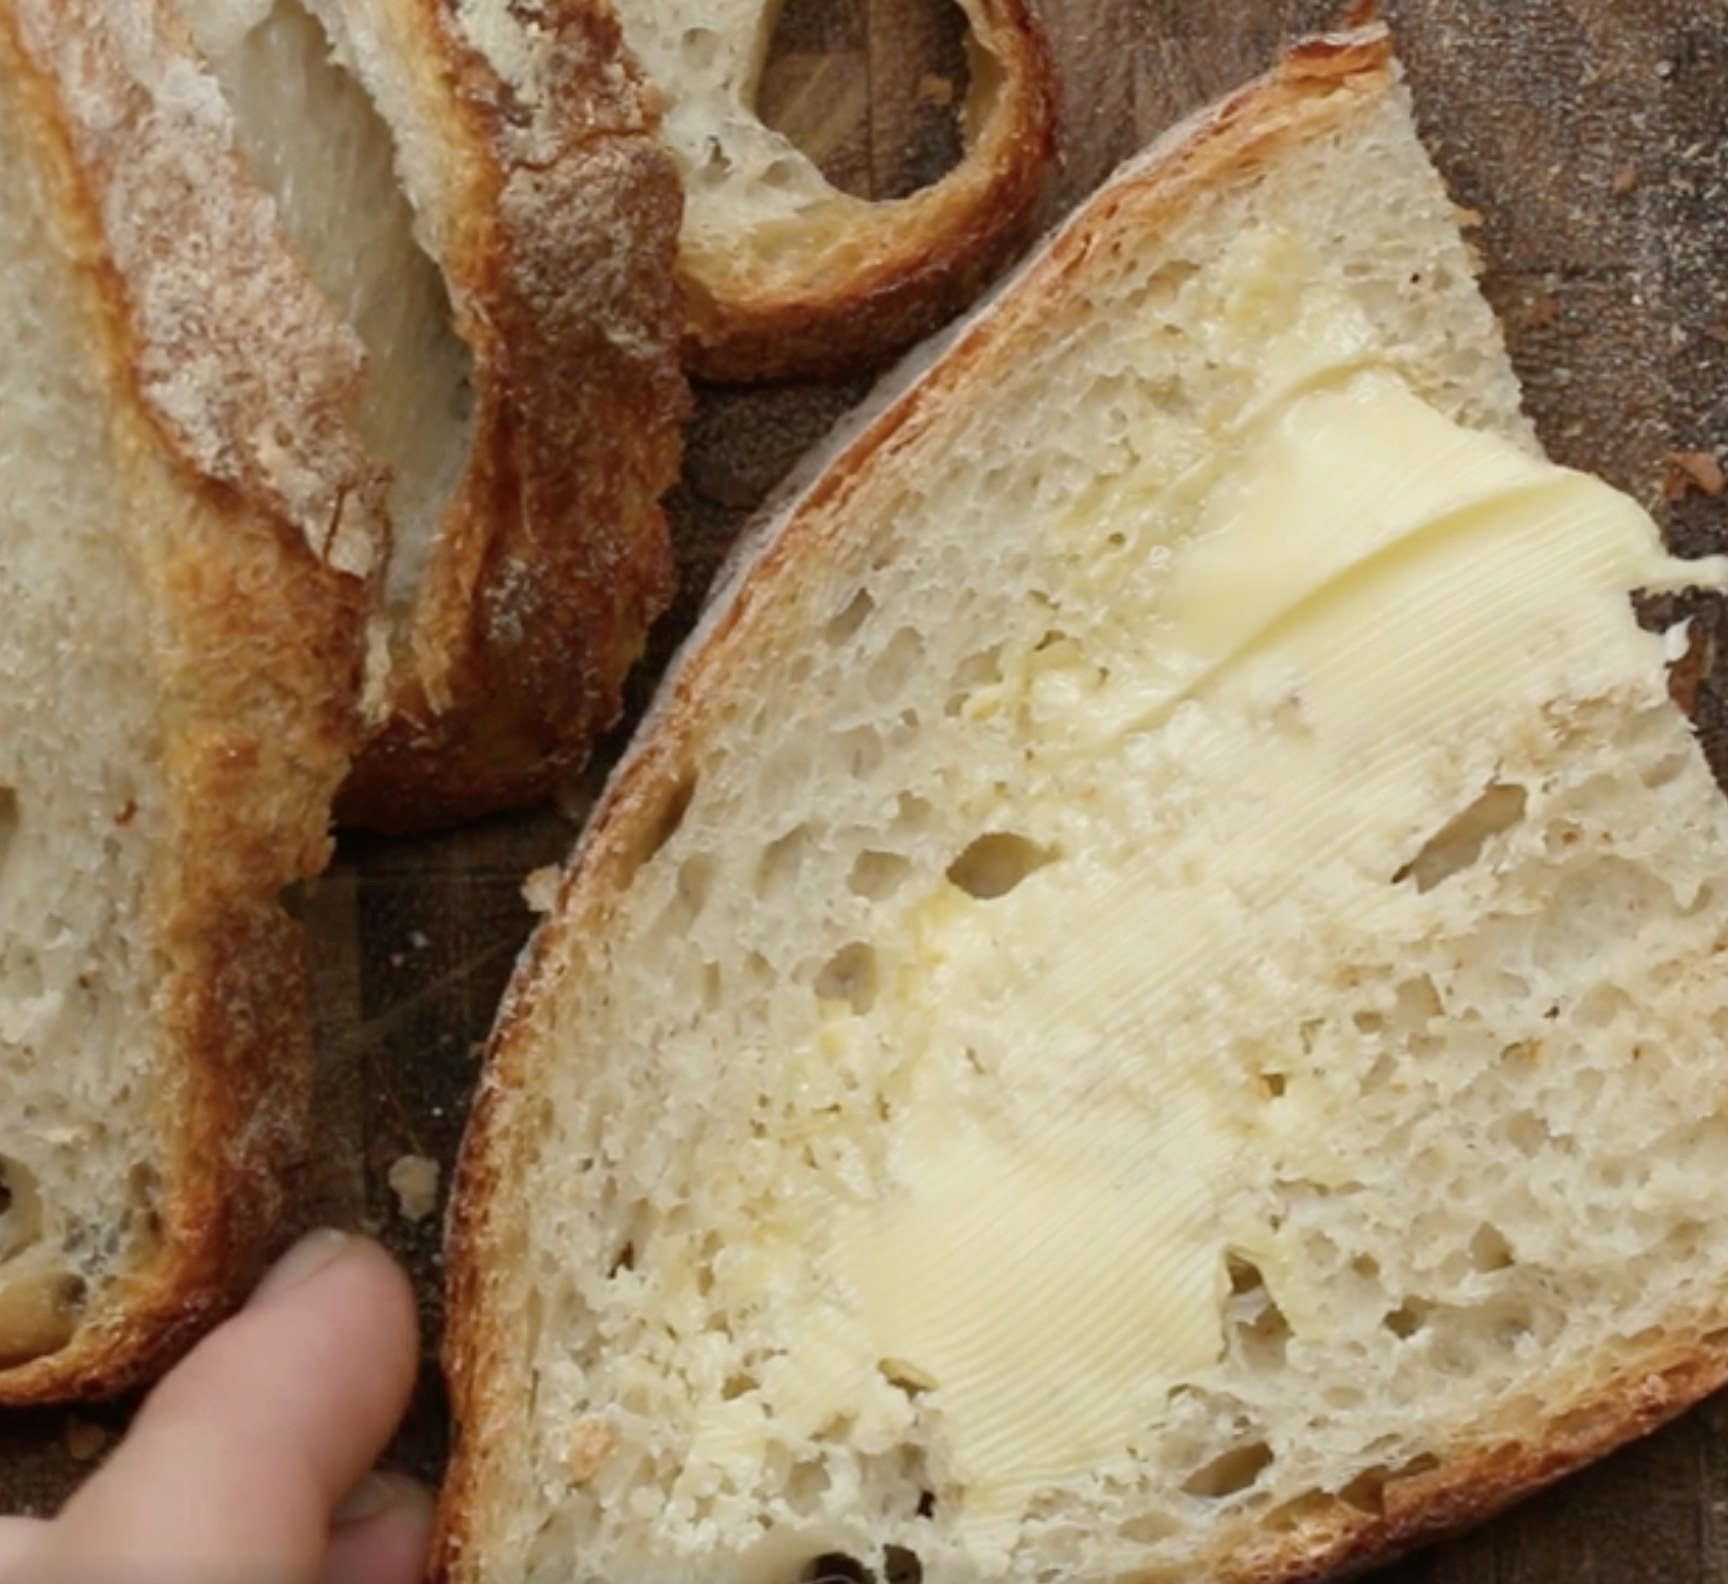 A slice of bread with butter on it